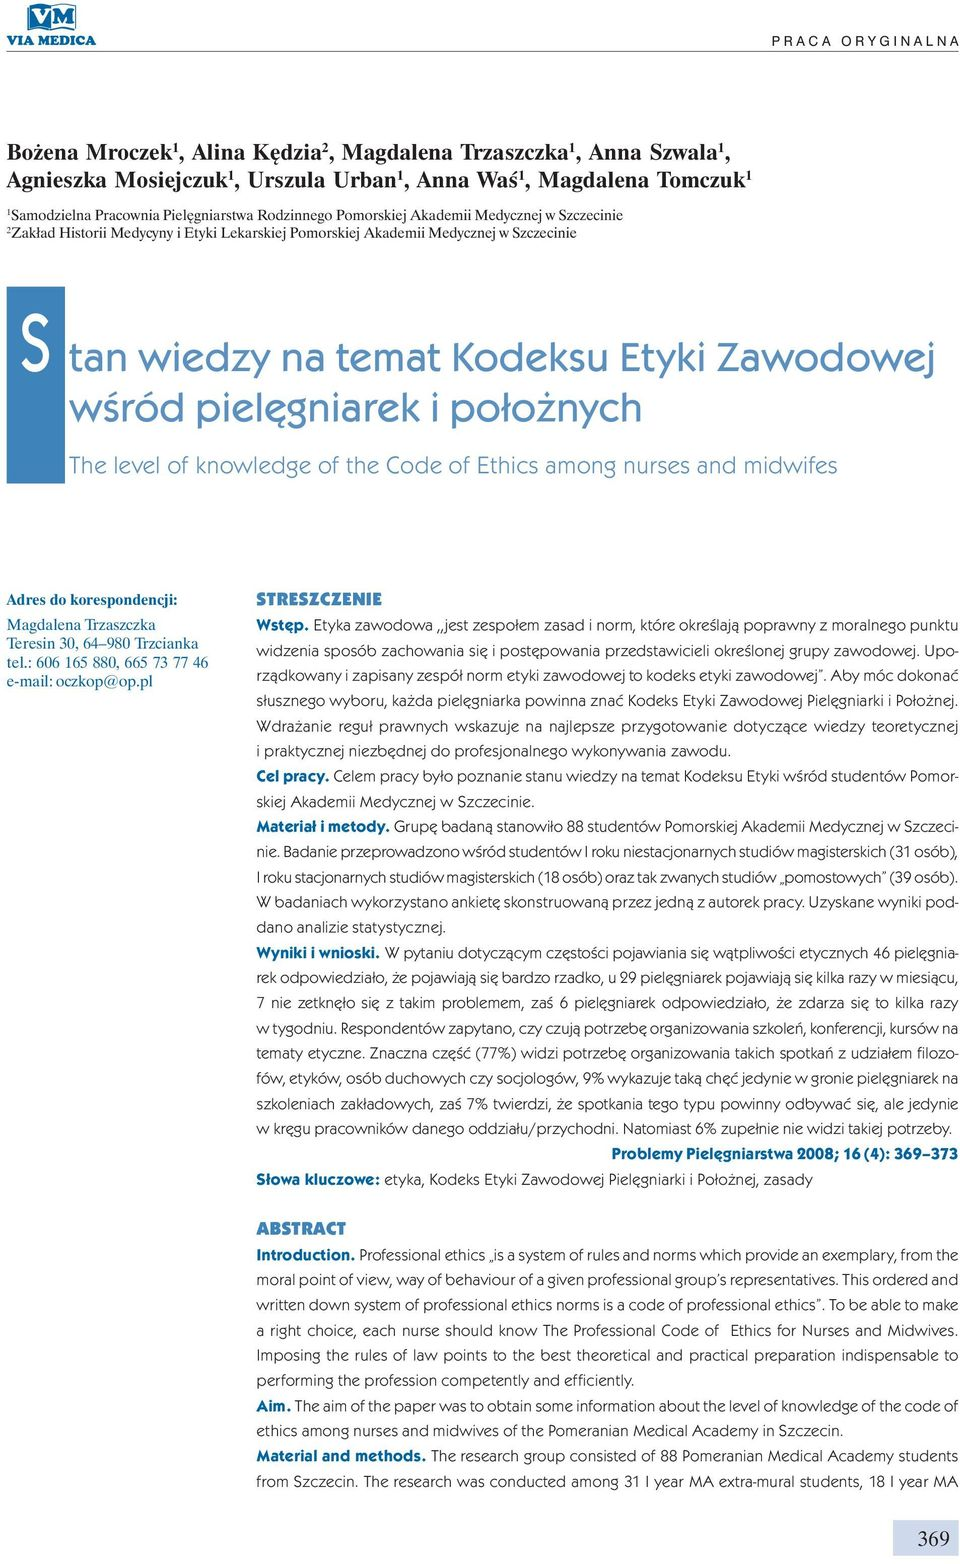 Law and ethics in midwifery